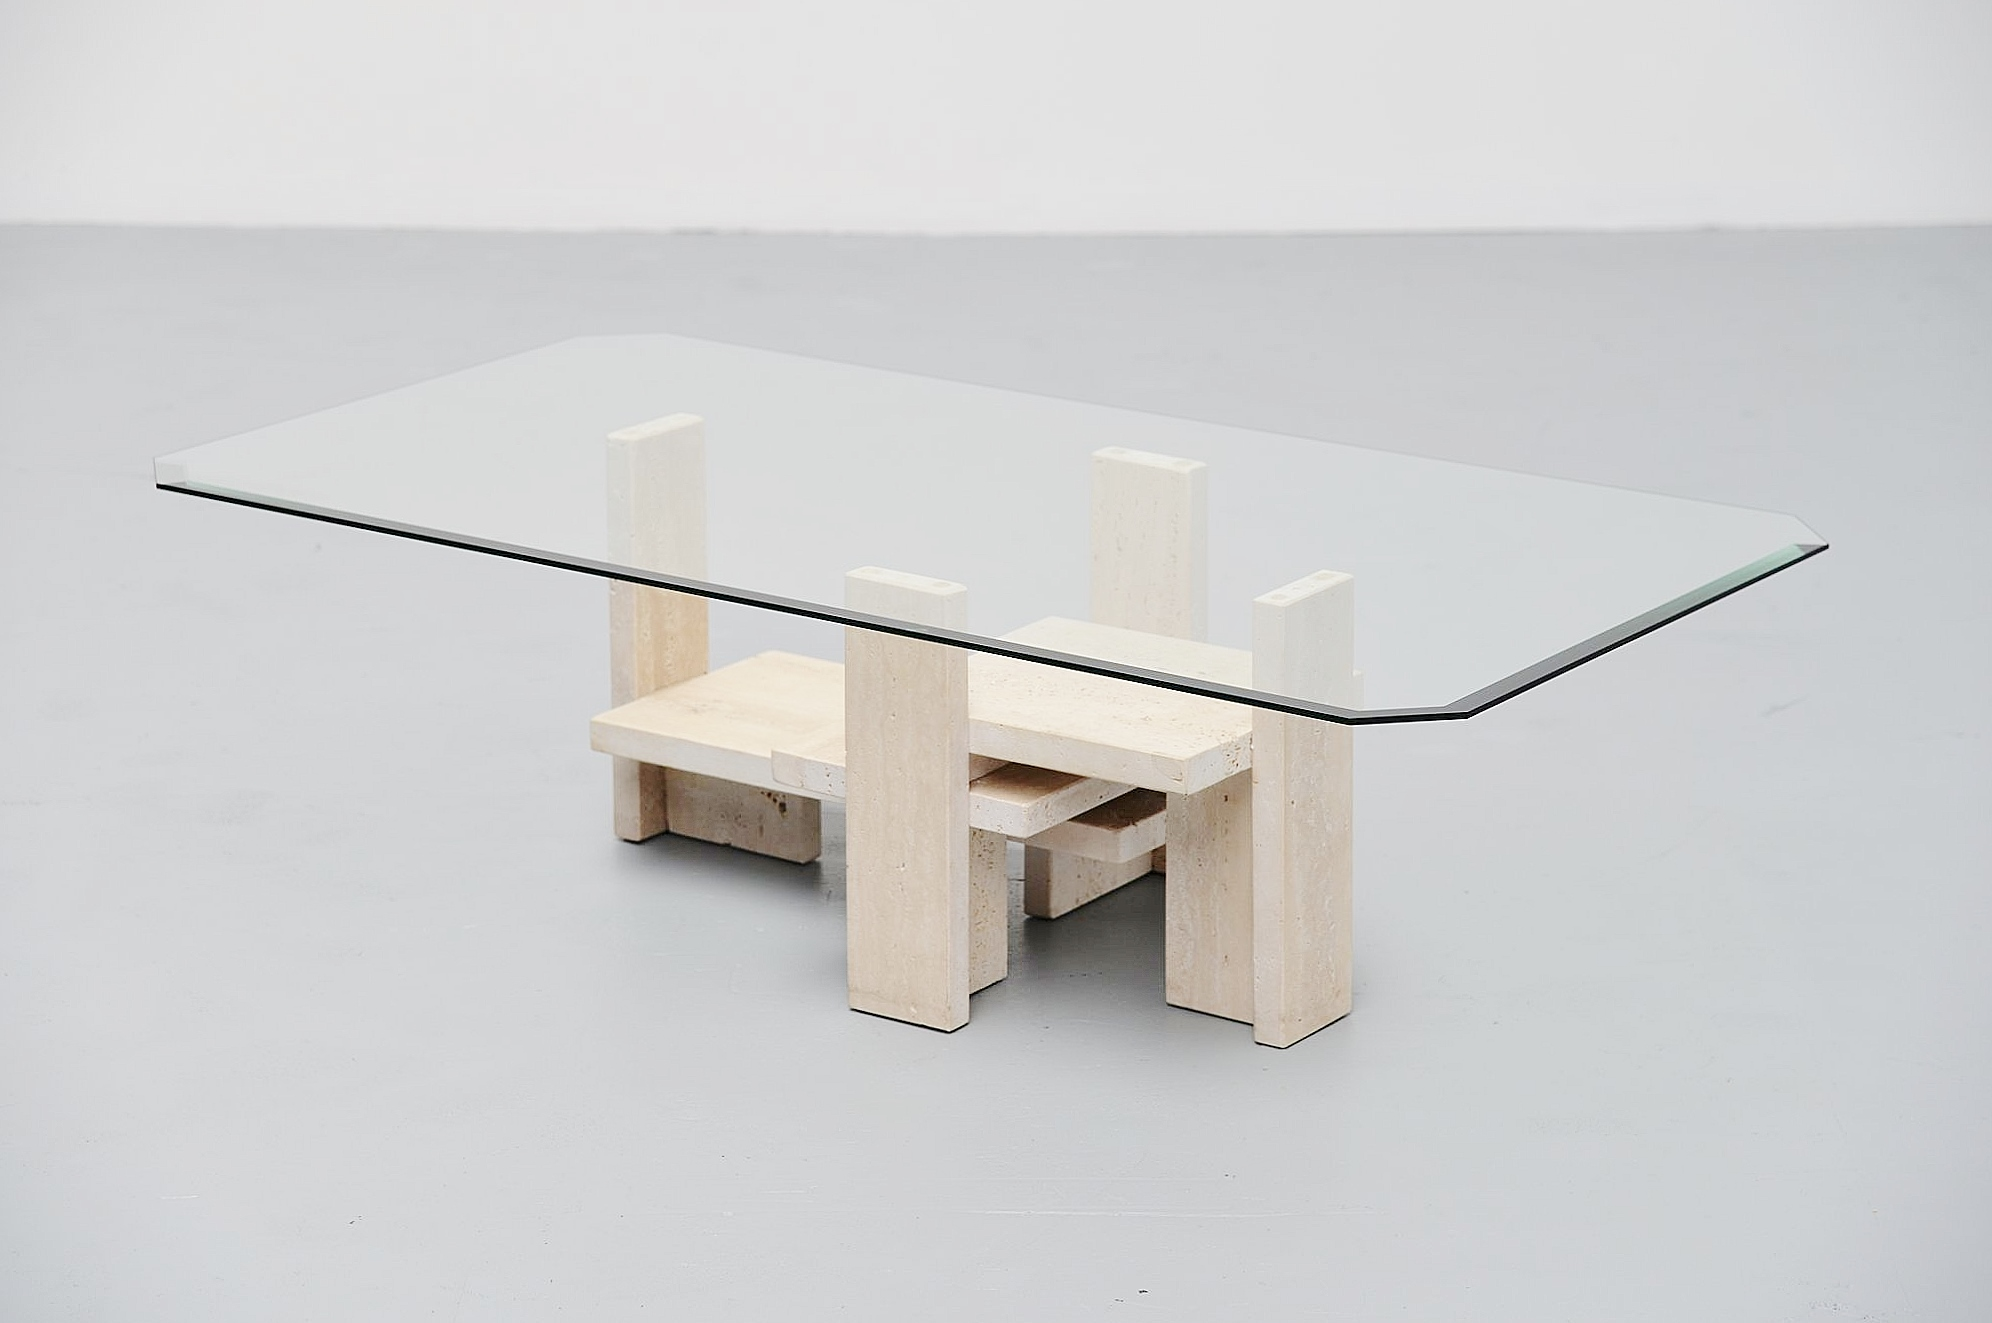 Sculptural Coffee Tables Willy Ballez Sculptural Tavertine Coffee Table Belgium